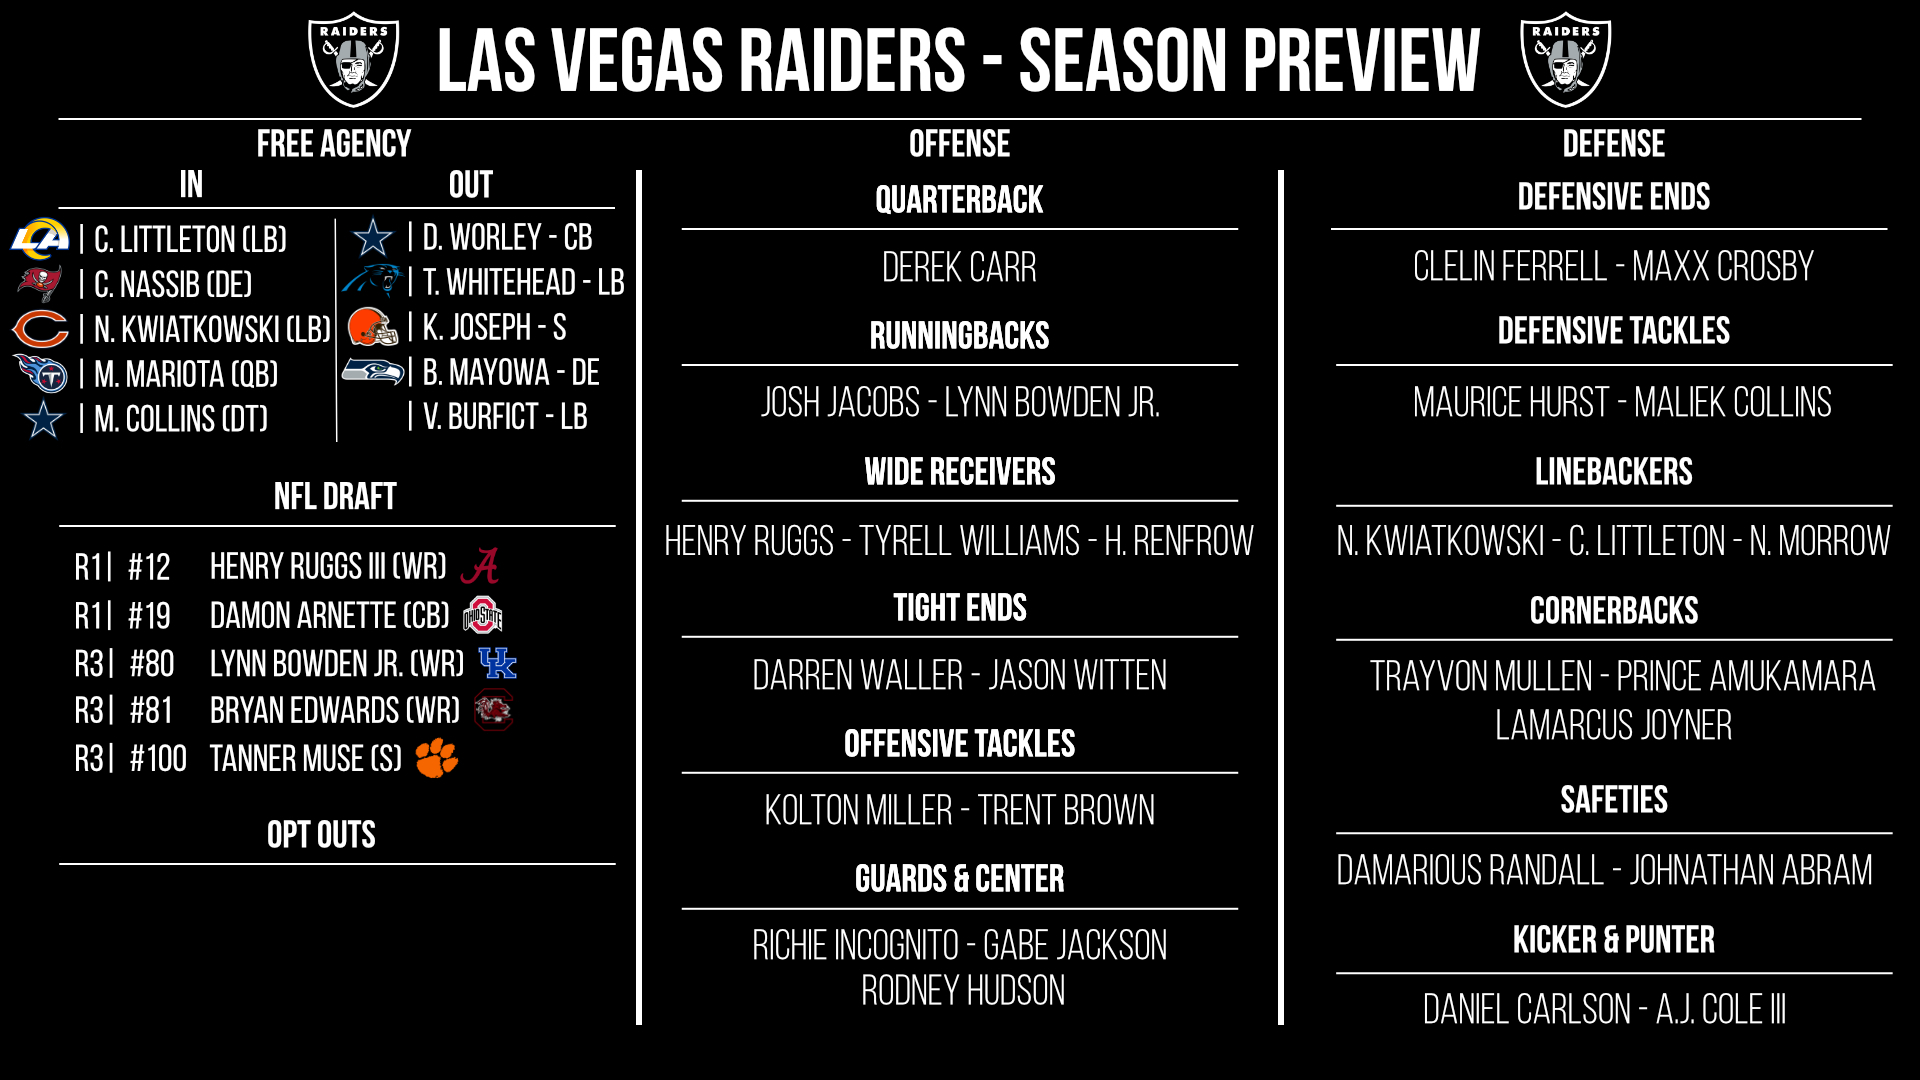 Las Vegas Raiders preview